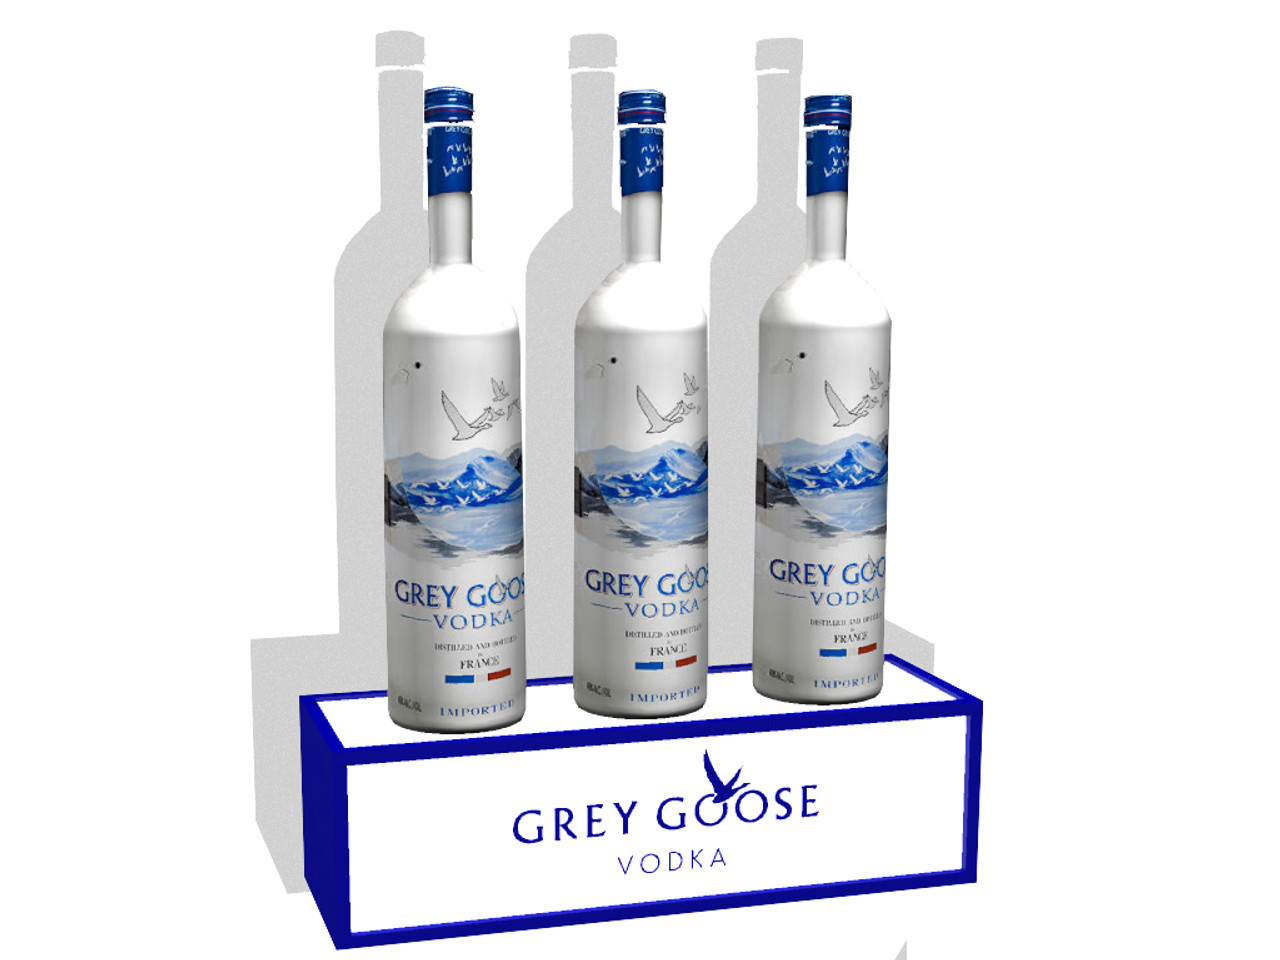 Grey Goose, Belvedere, Ketel One, Rum,Vodka, Tequila, Stand, Point of sale, POS, Shelf, Display, single, three, triple, bottle, Bottle display, custom, logo, customizable, personalize